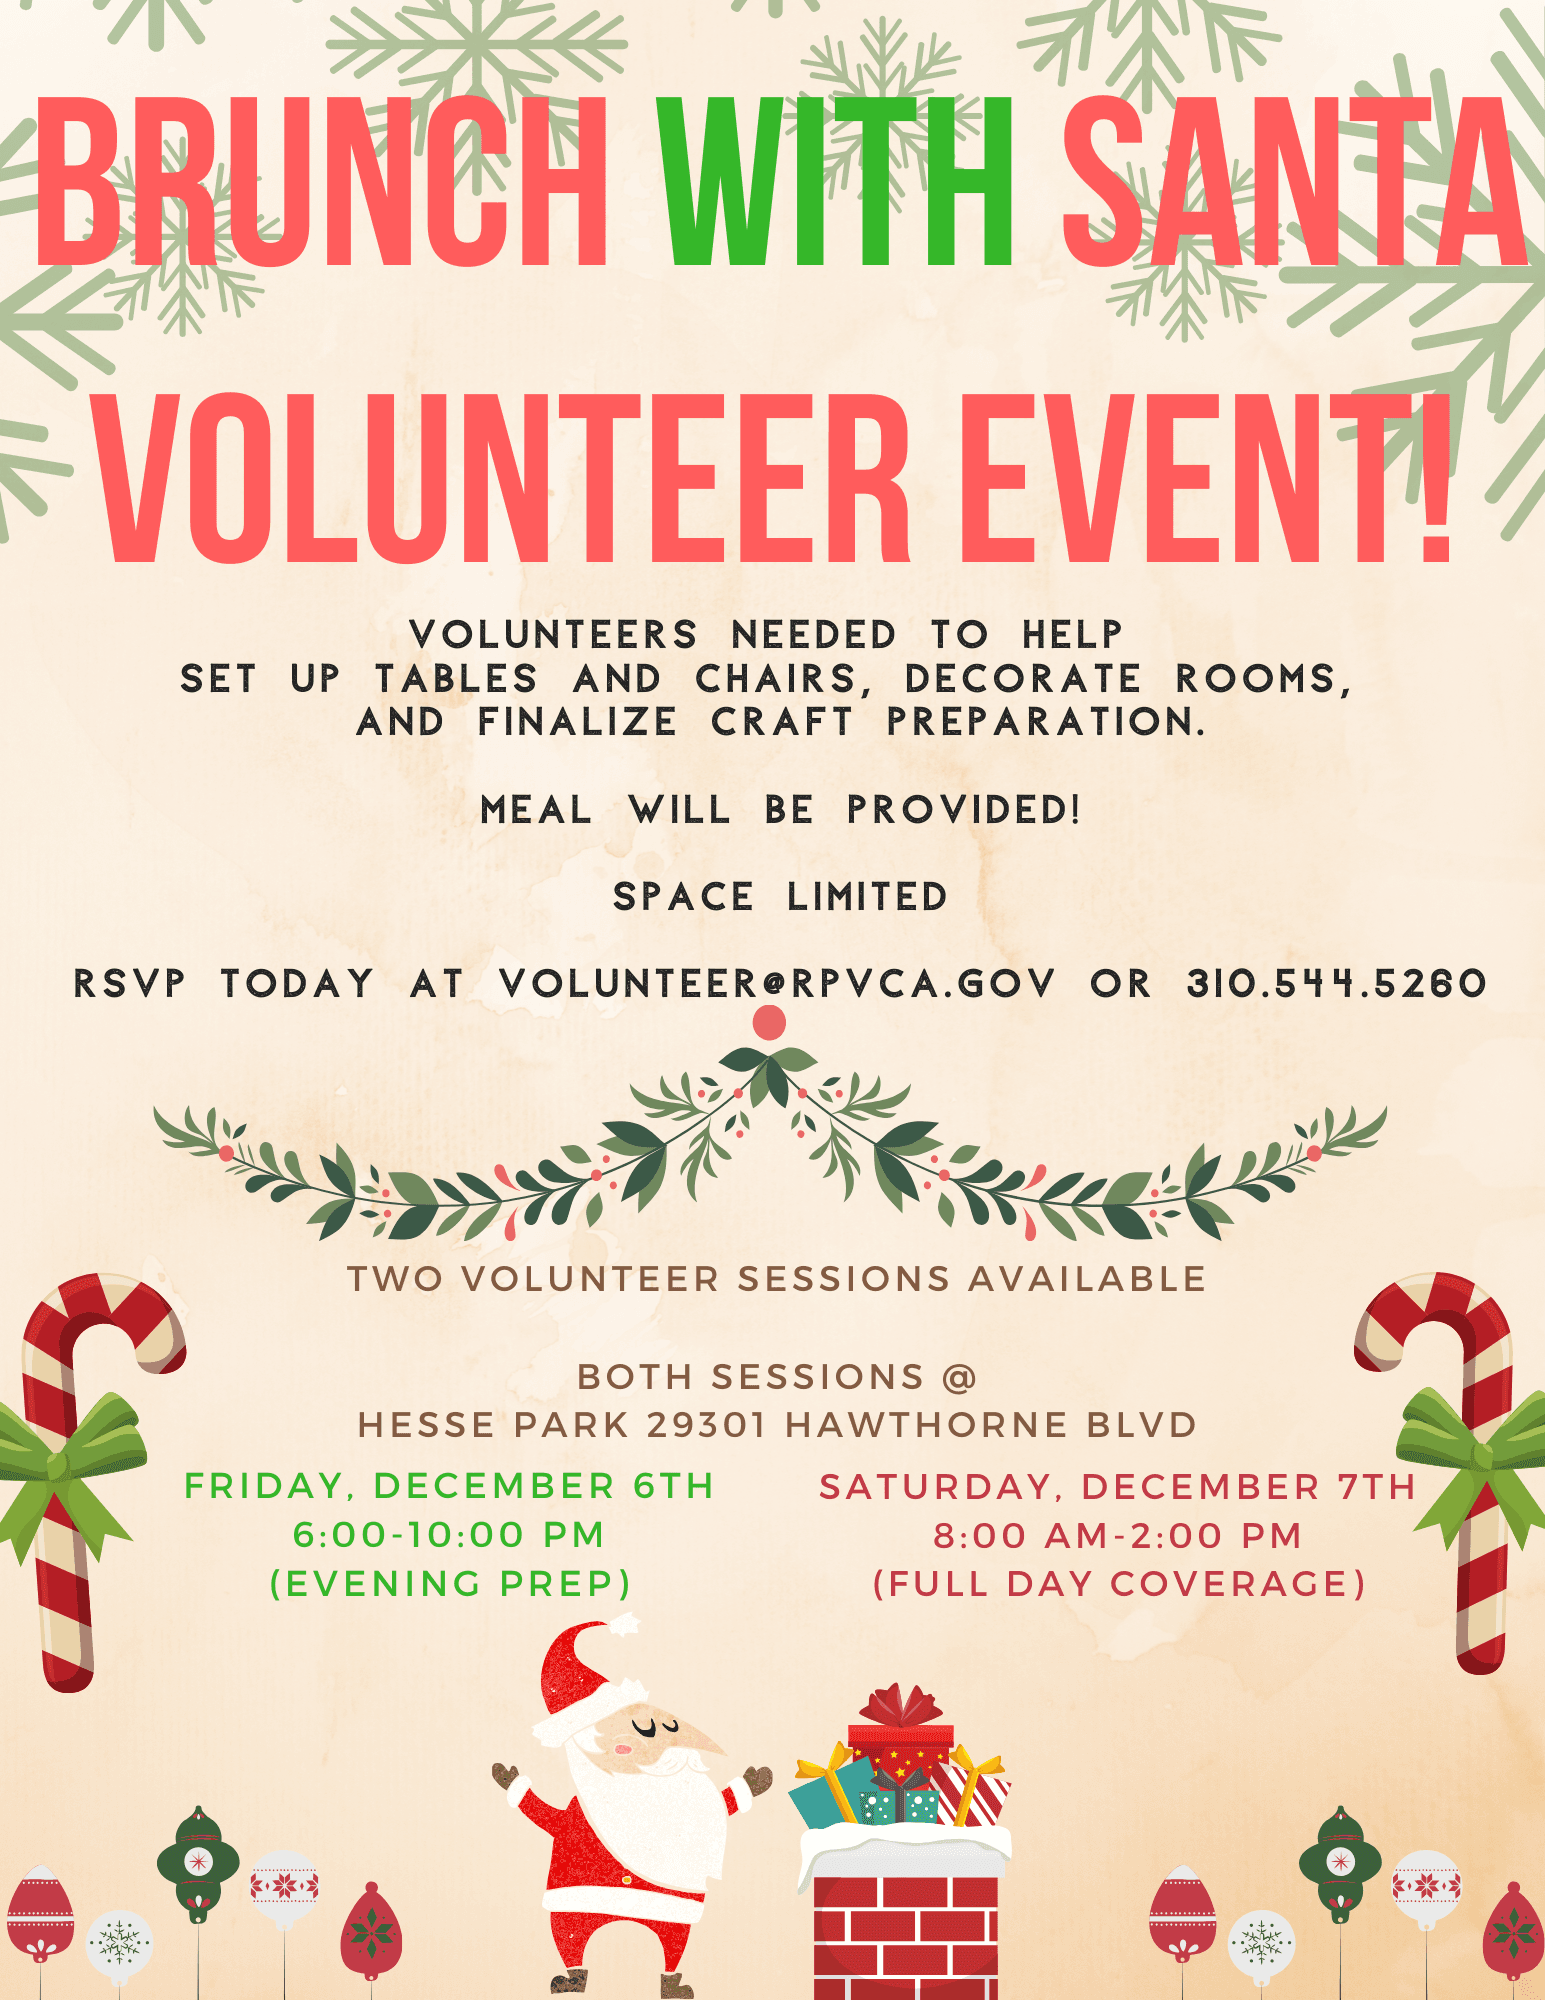 Brunch With Santa - Volunteer Event 12.6 and 12.7